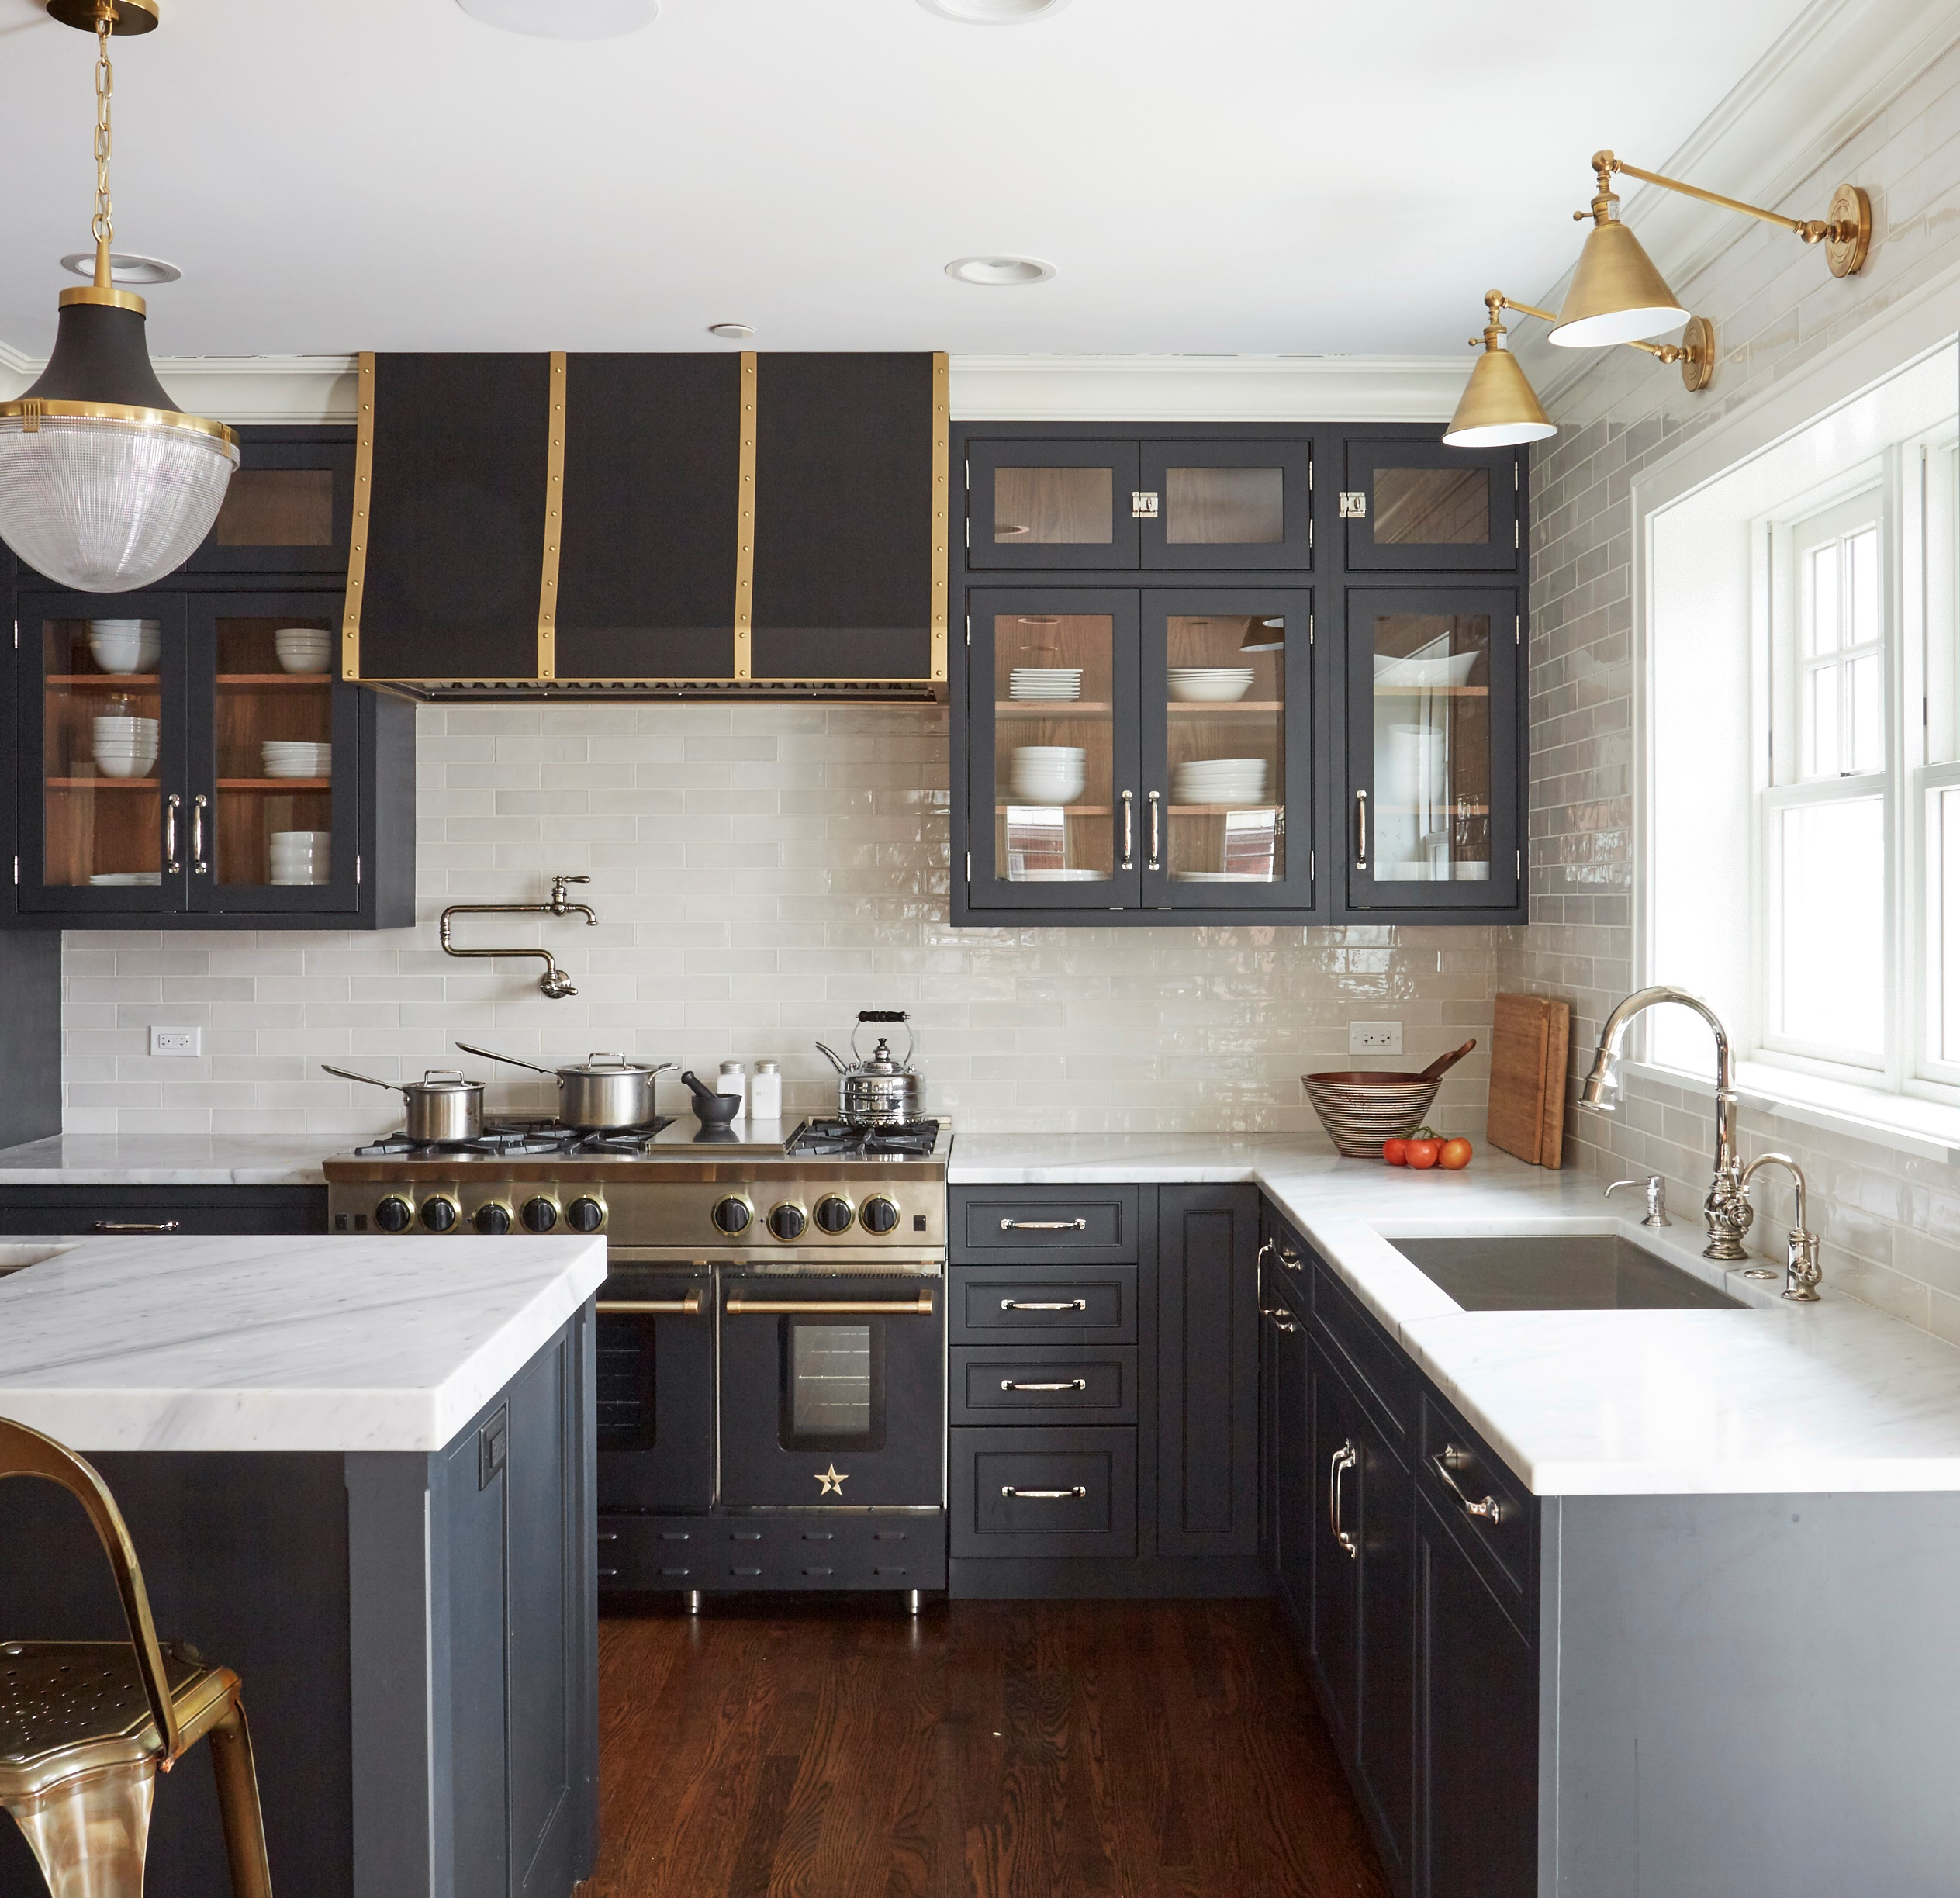 Addison Osta Smith Kitchen Photo BlueStar